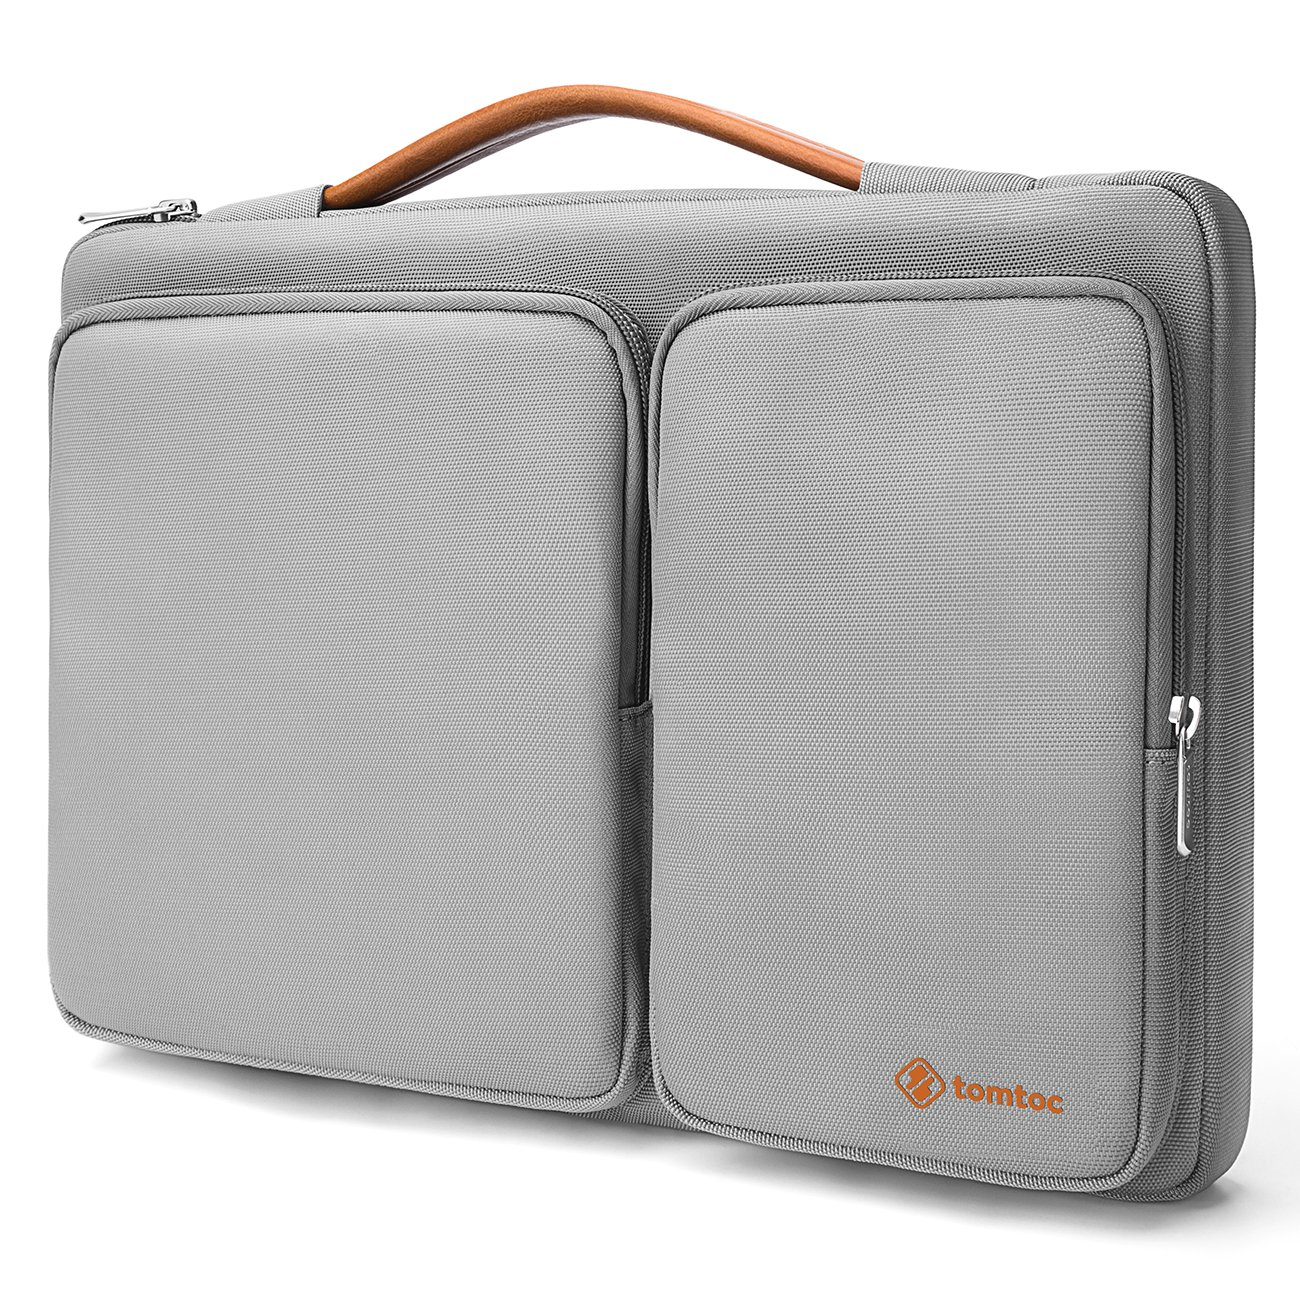 tomtoc 360° Protective Laptop Sleeve Compatible with New MacBook Air - 13.3'' Retina Display 2018 A1932| 13 Inch New MacBook Pro A1989 A1706 A1708 | Surface Pro 6/5/4, Water Resistant Laptop Briefcase